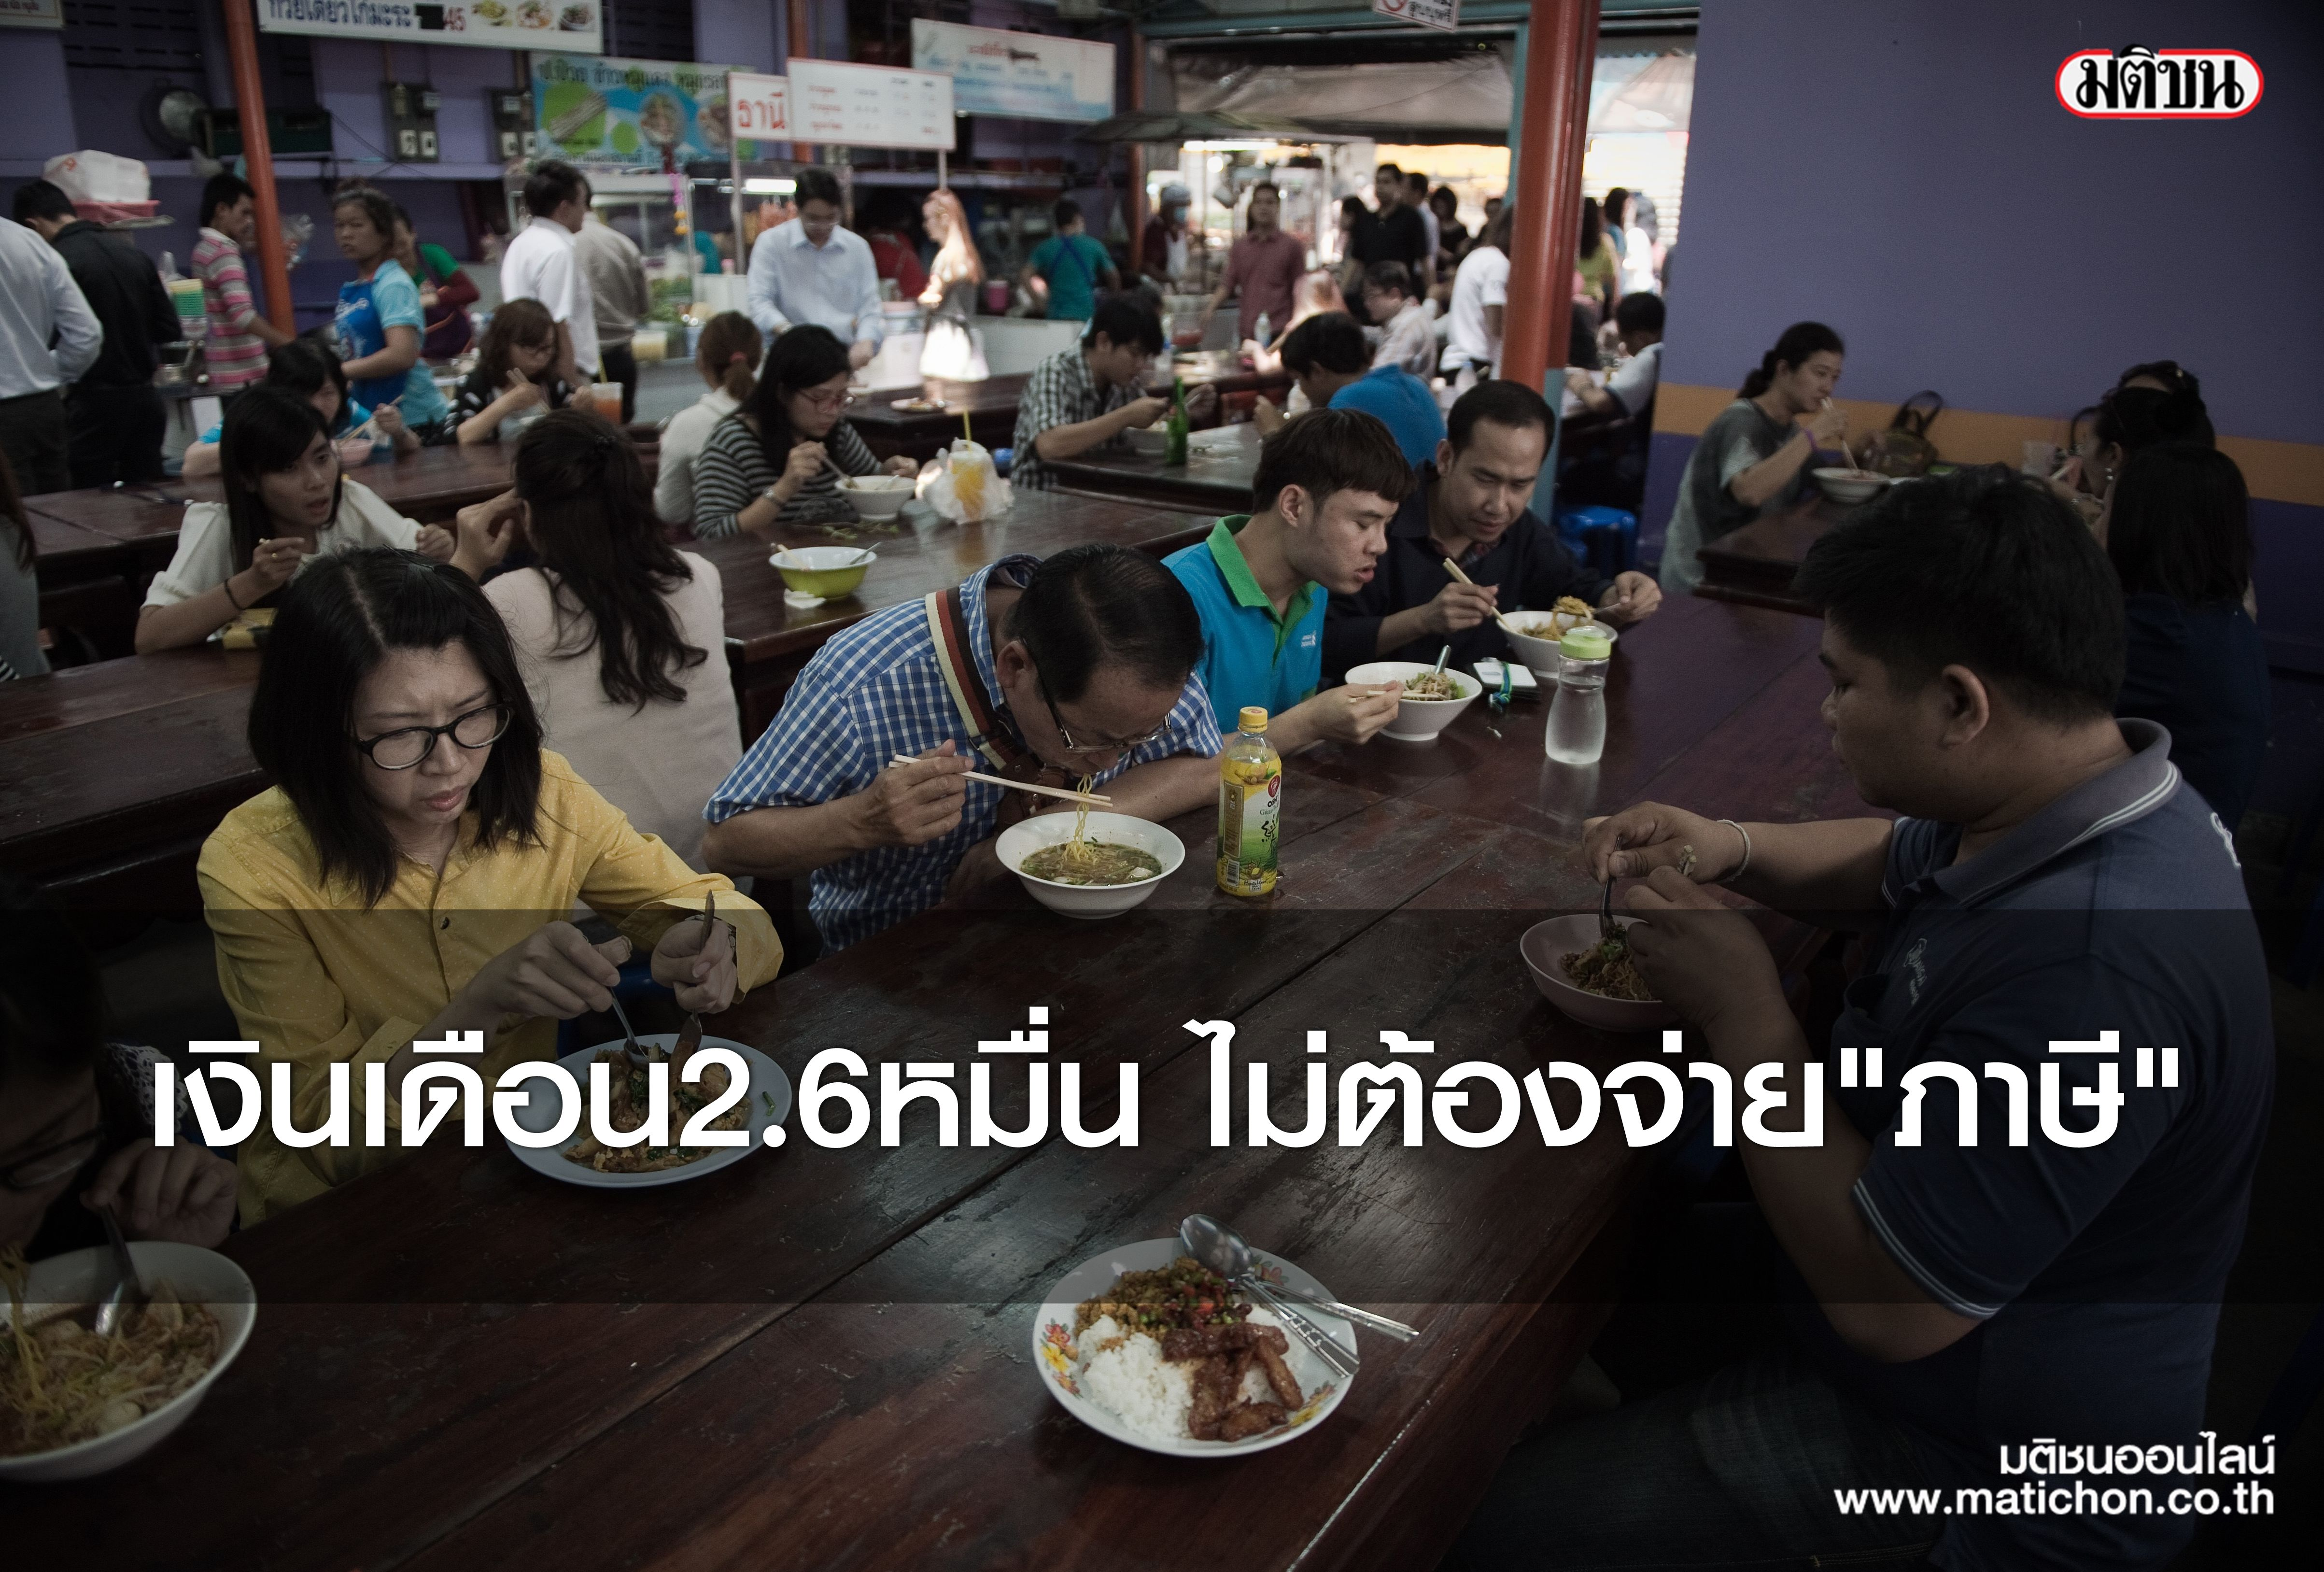 People eat their lunch at a restaurant in Bangkok on June 17, 2015. AFP PHOTO / Nicolas ASFOURI